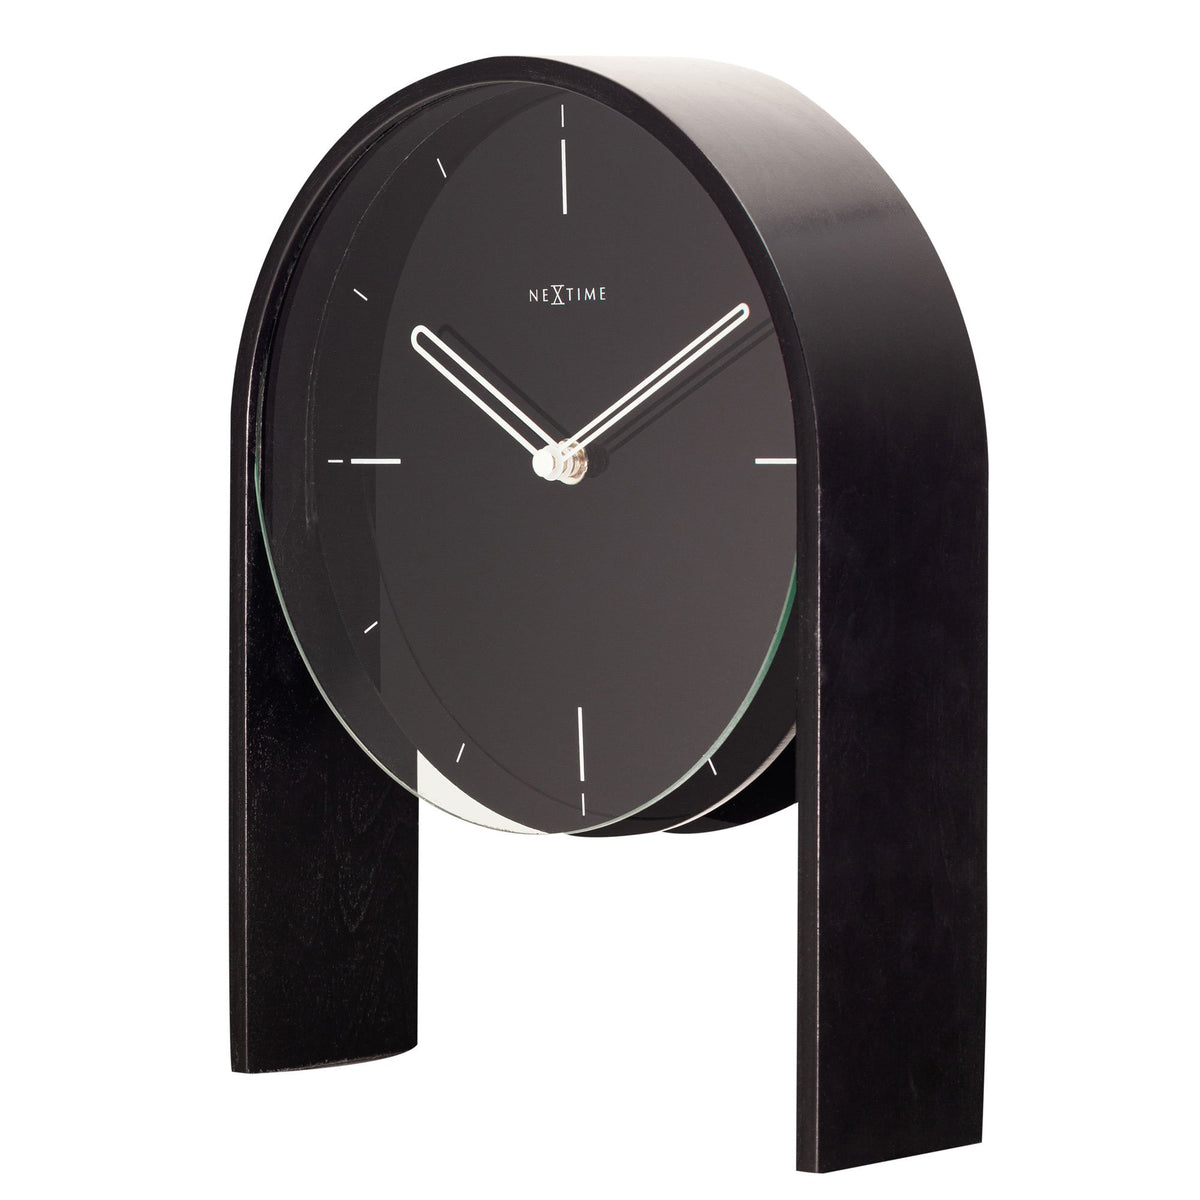 NeXtime- Table clock - 27 x 21 x 6,5 cm - Wood - Black - 'Noa Table'